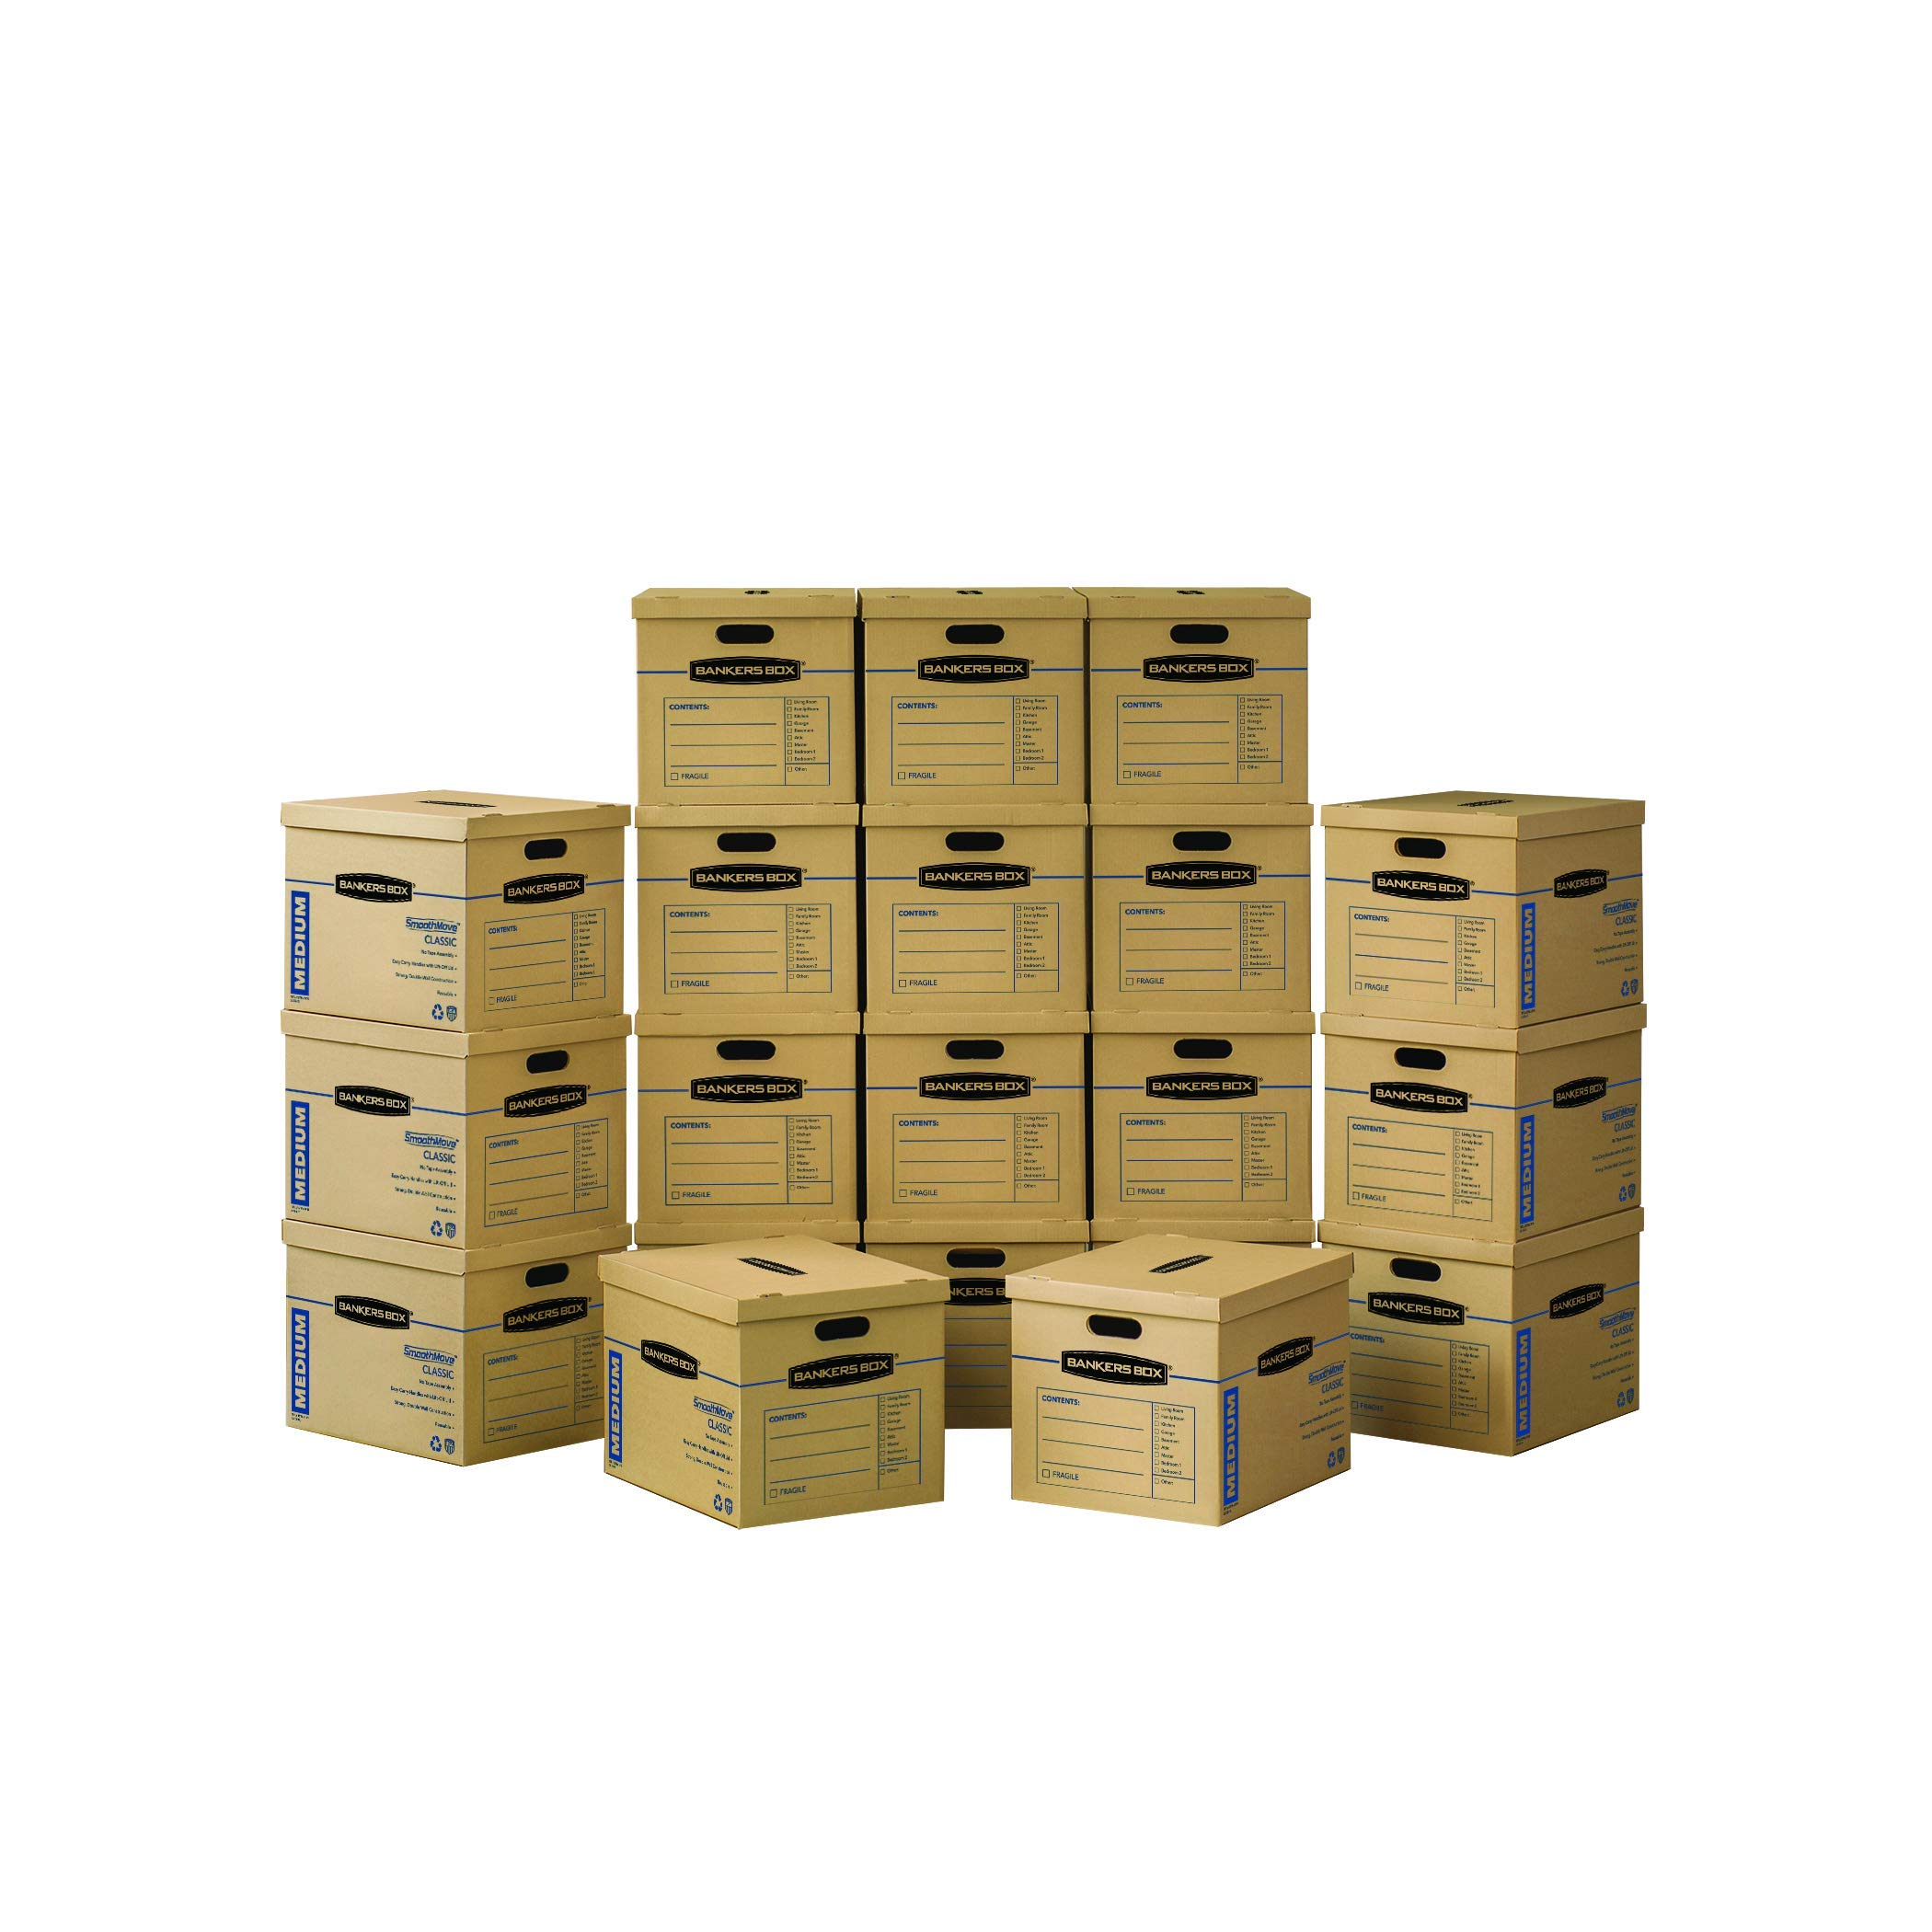 Bankers Box SmoothMove Classic Moving Boxes, Tape-Free Assembly, Easy Carry Handles, Medium, 18 x 15 x 14 Inches, 20 Pack (8817202) by Bankers Box